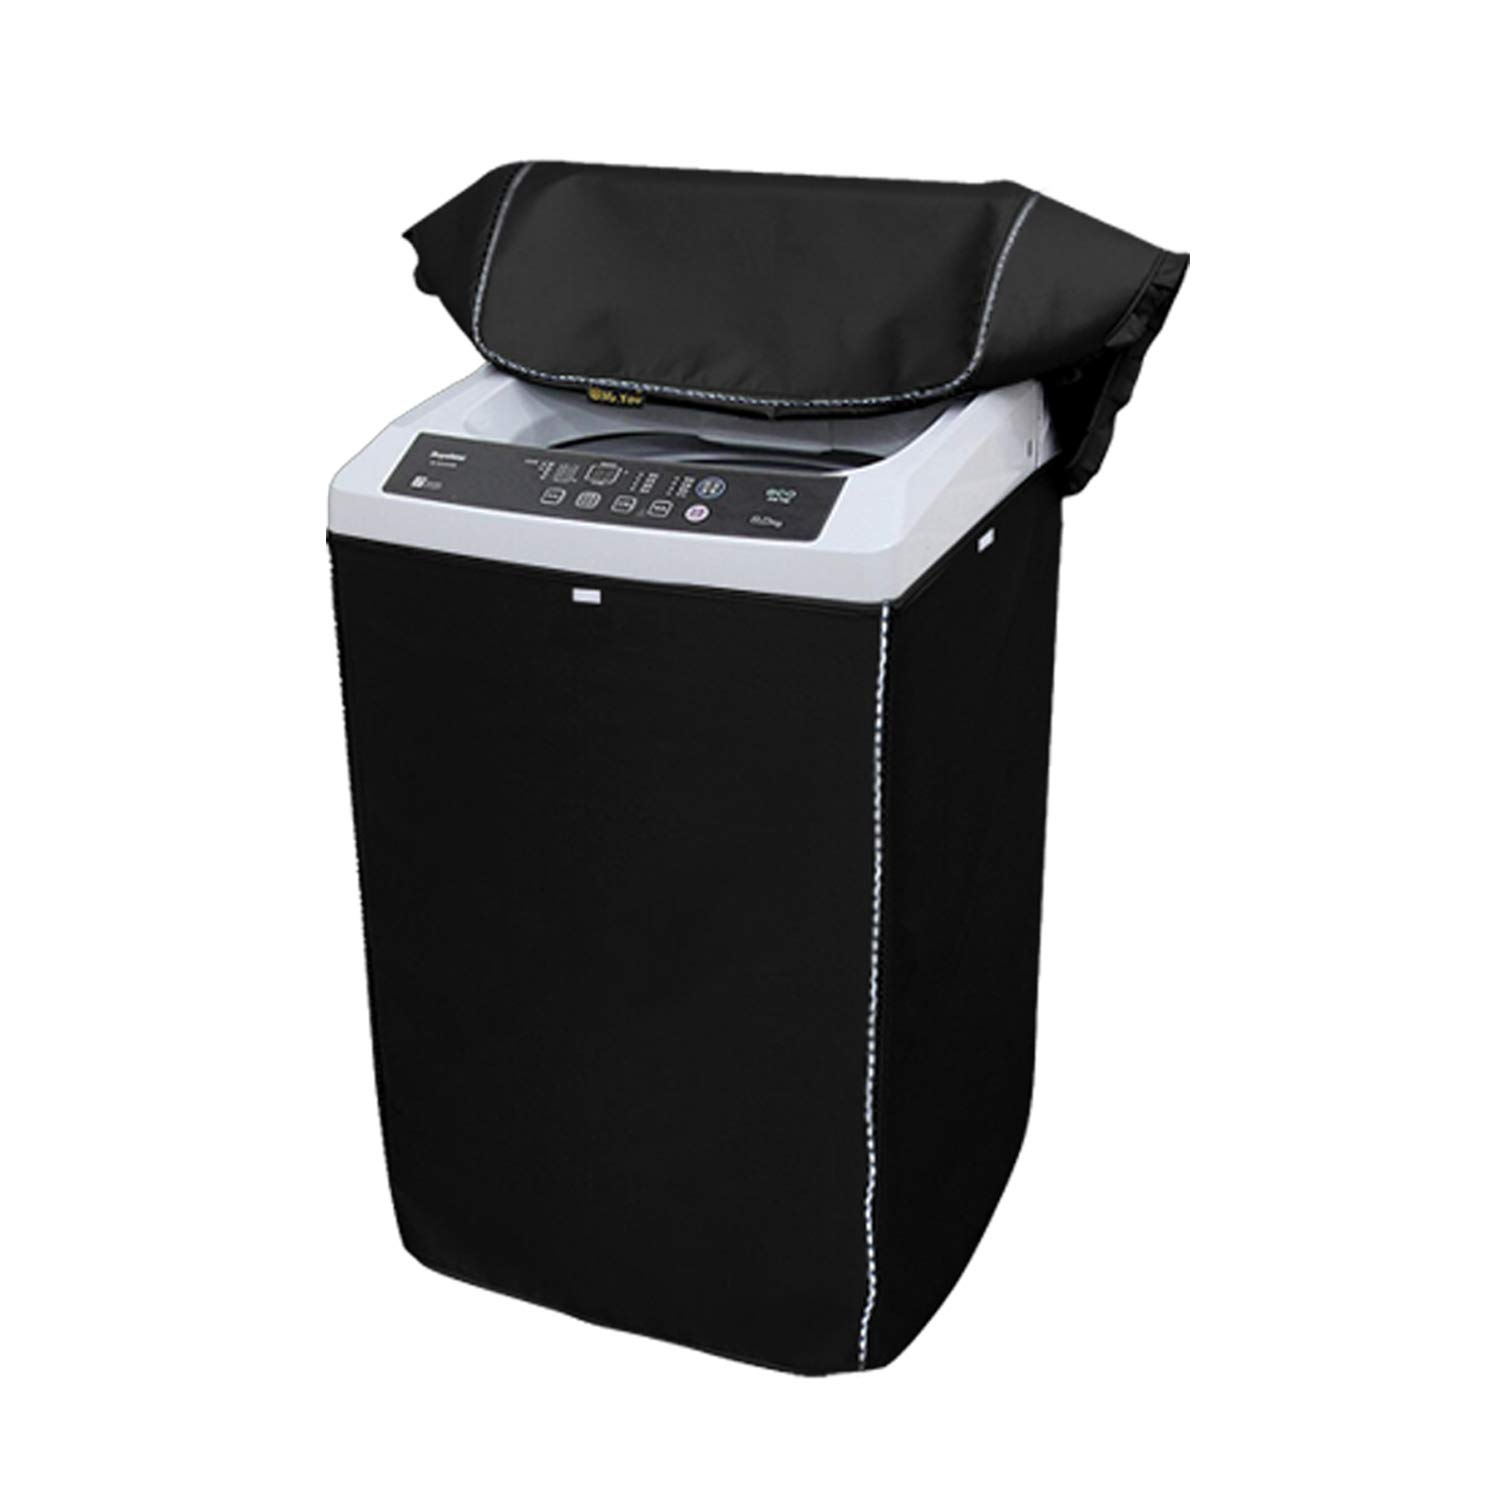 Portable Washing Machine Cover,Top Load Washer Dryer Cover,Waterproof Full-Automatic/Wheel Washing Machine Cover(24''25''38''inches,Black) by Mr.You